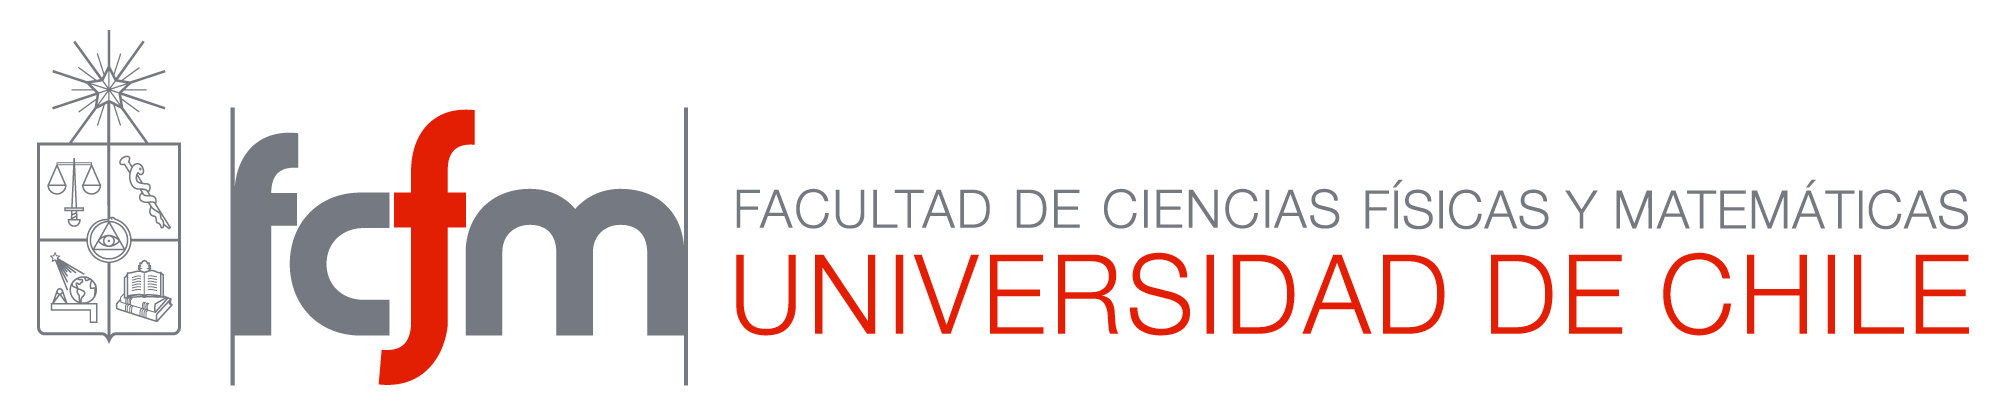 logo facultad universidad de chile.jpg